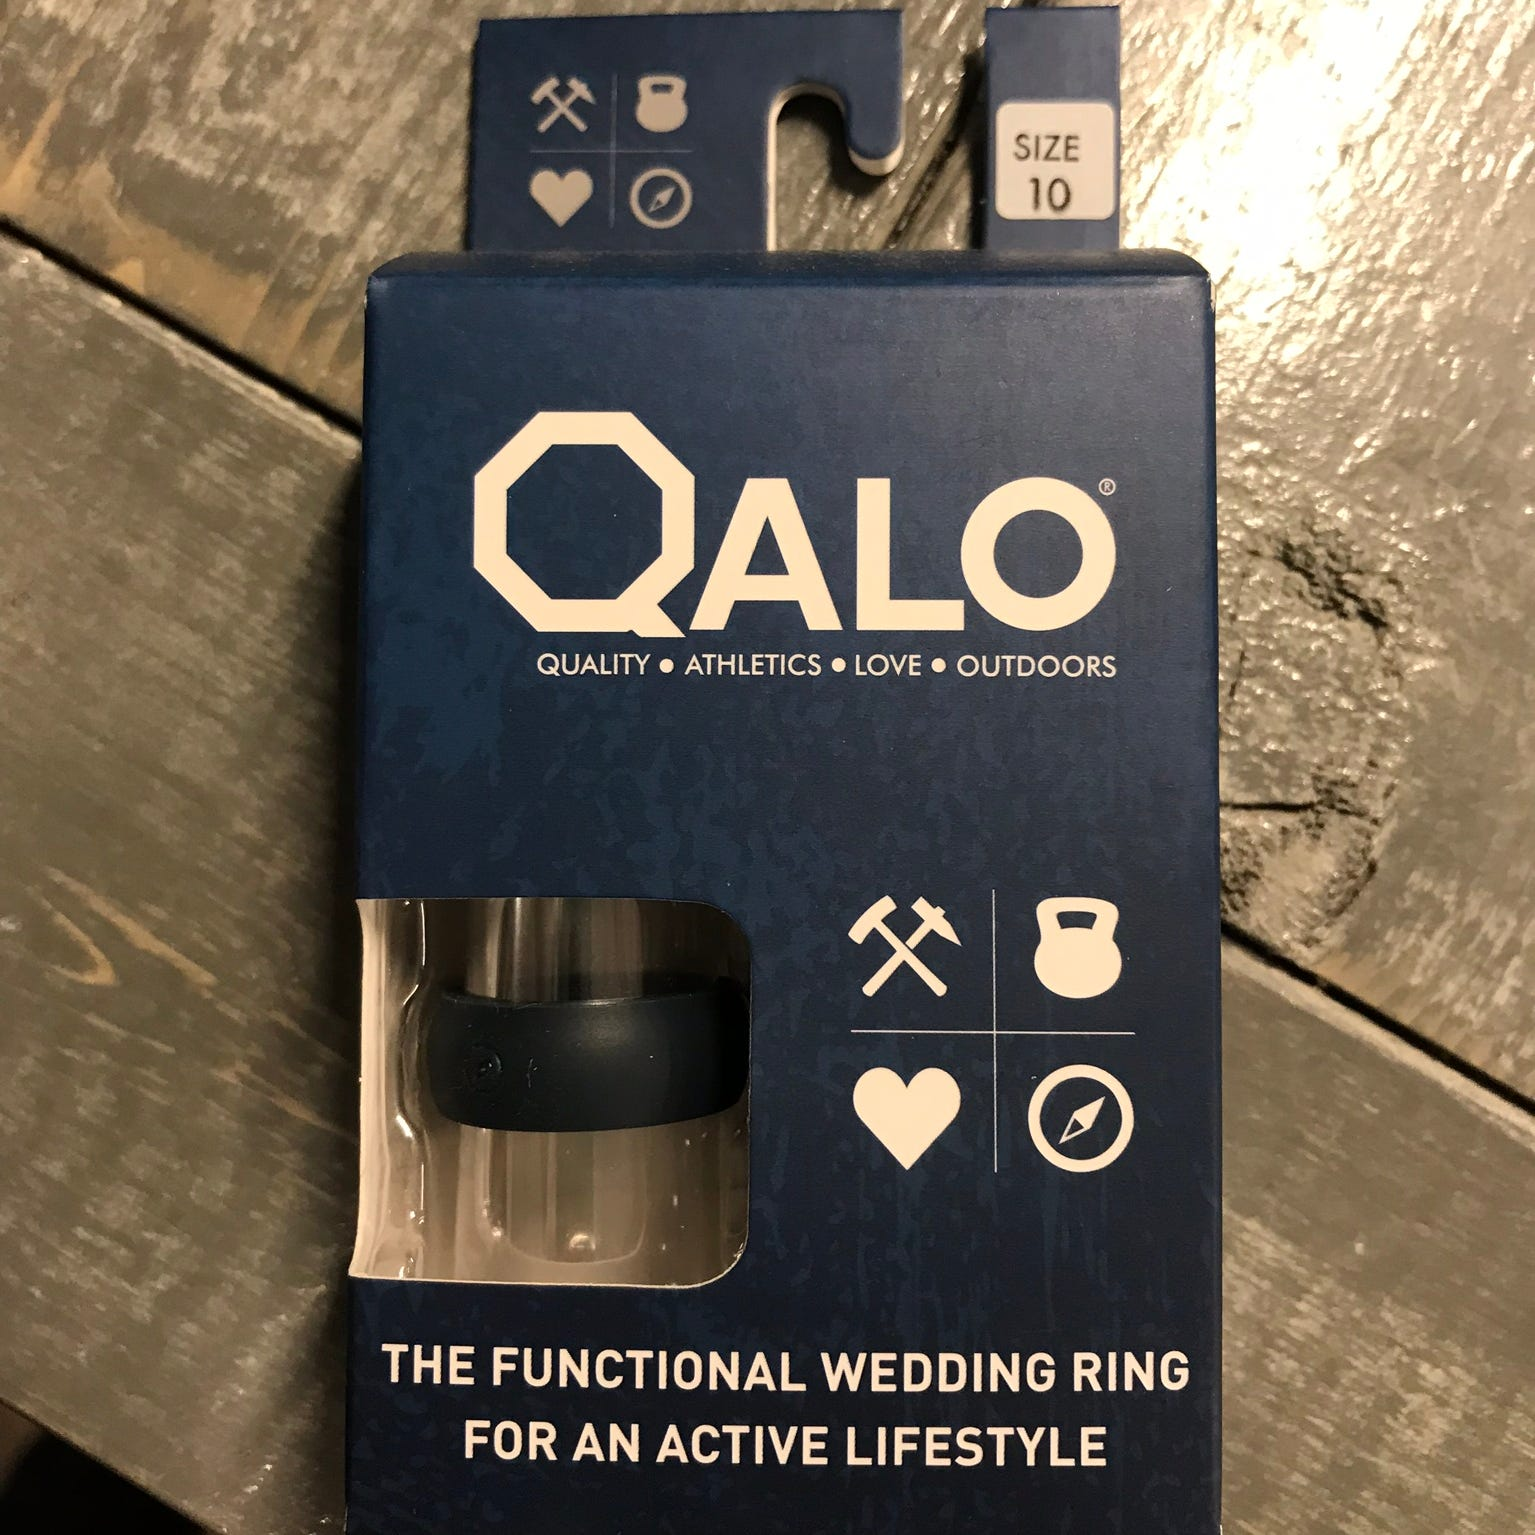 Mountain High Outfitters sells a line of $20 Qato...